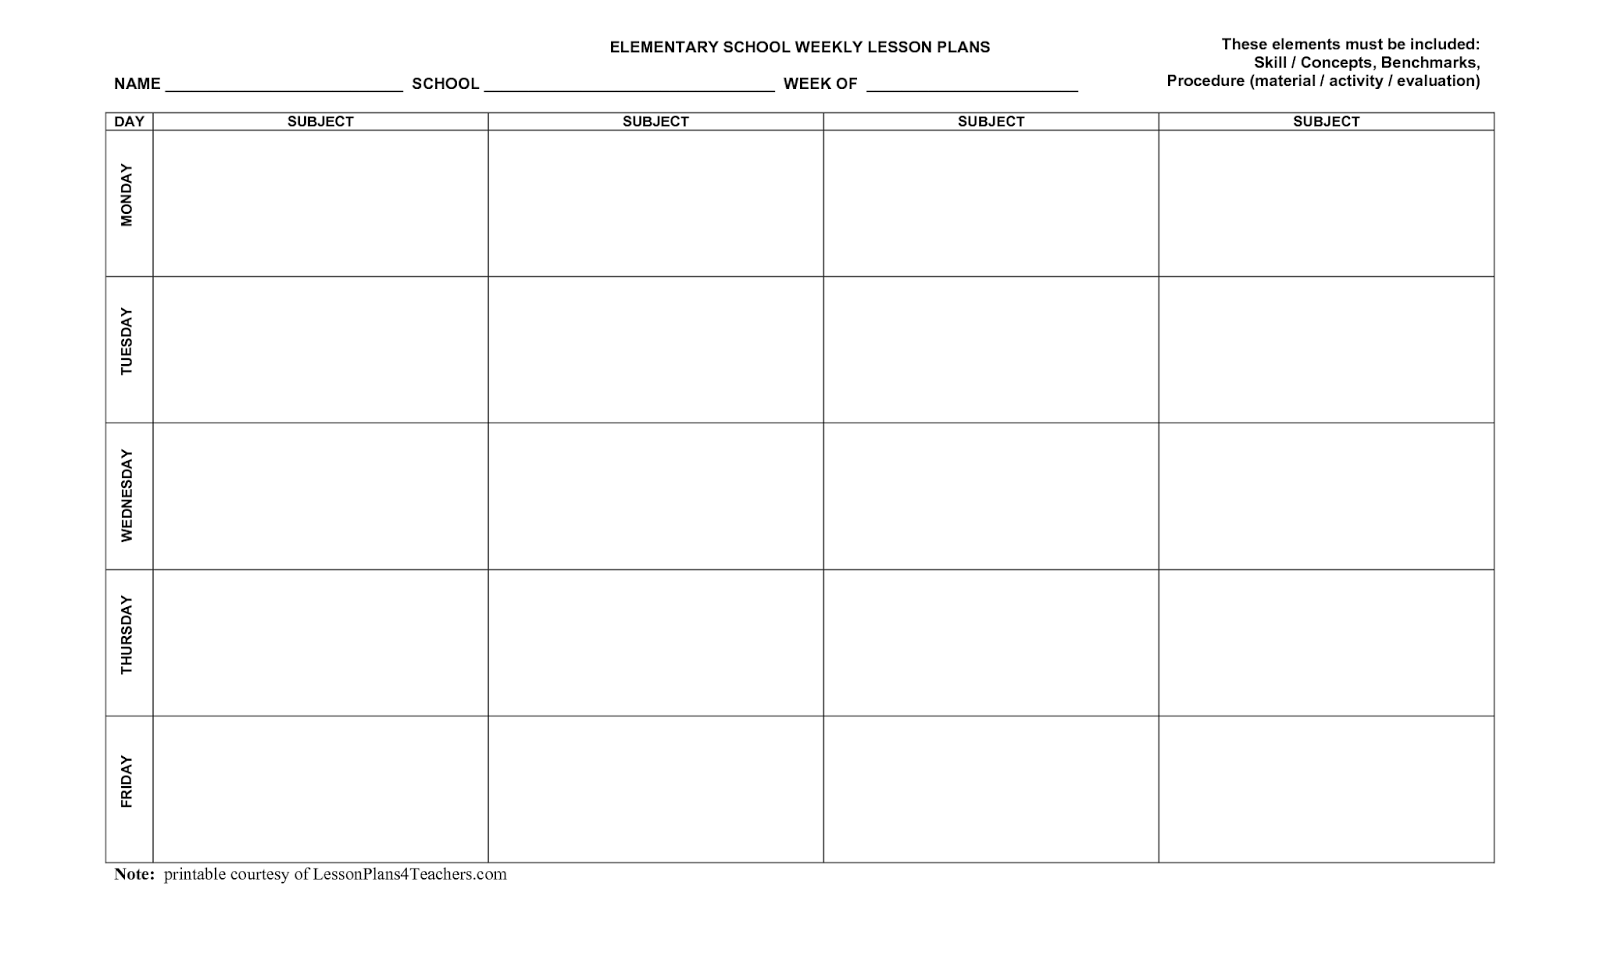 weekly lesson plan template 2 weekly lesson plan template 3